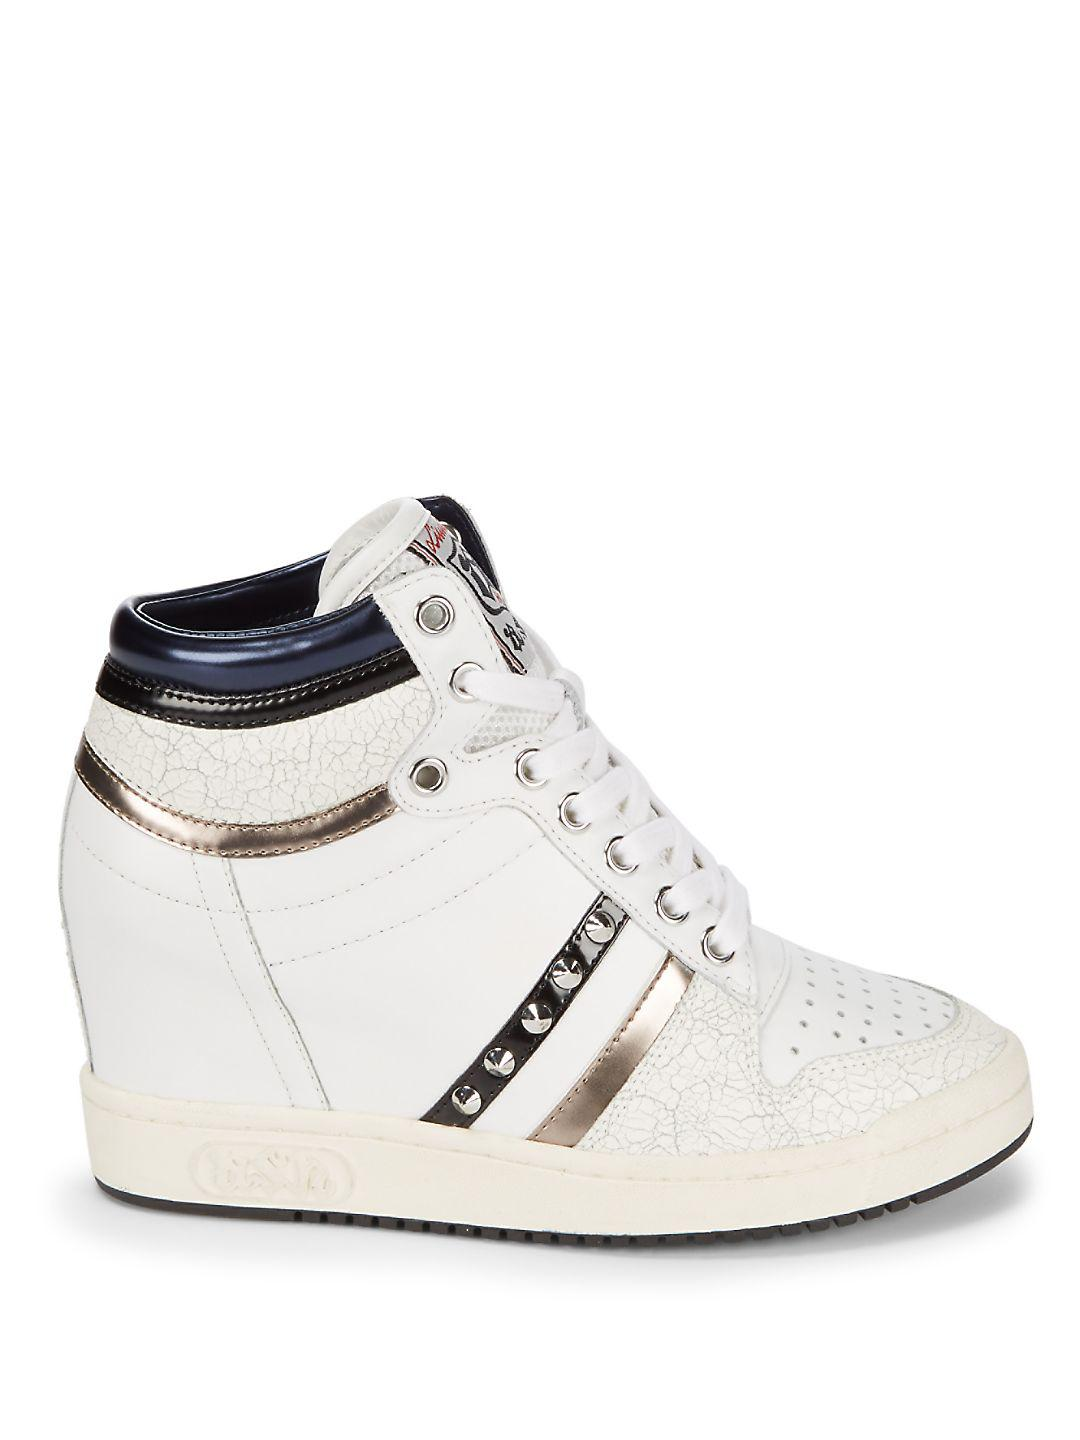 Ash Studded Leather Wedge Sneakers in White